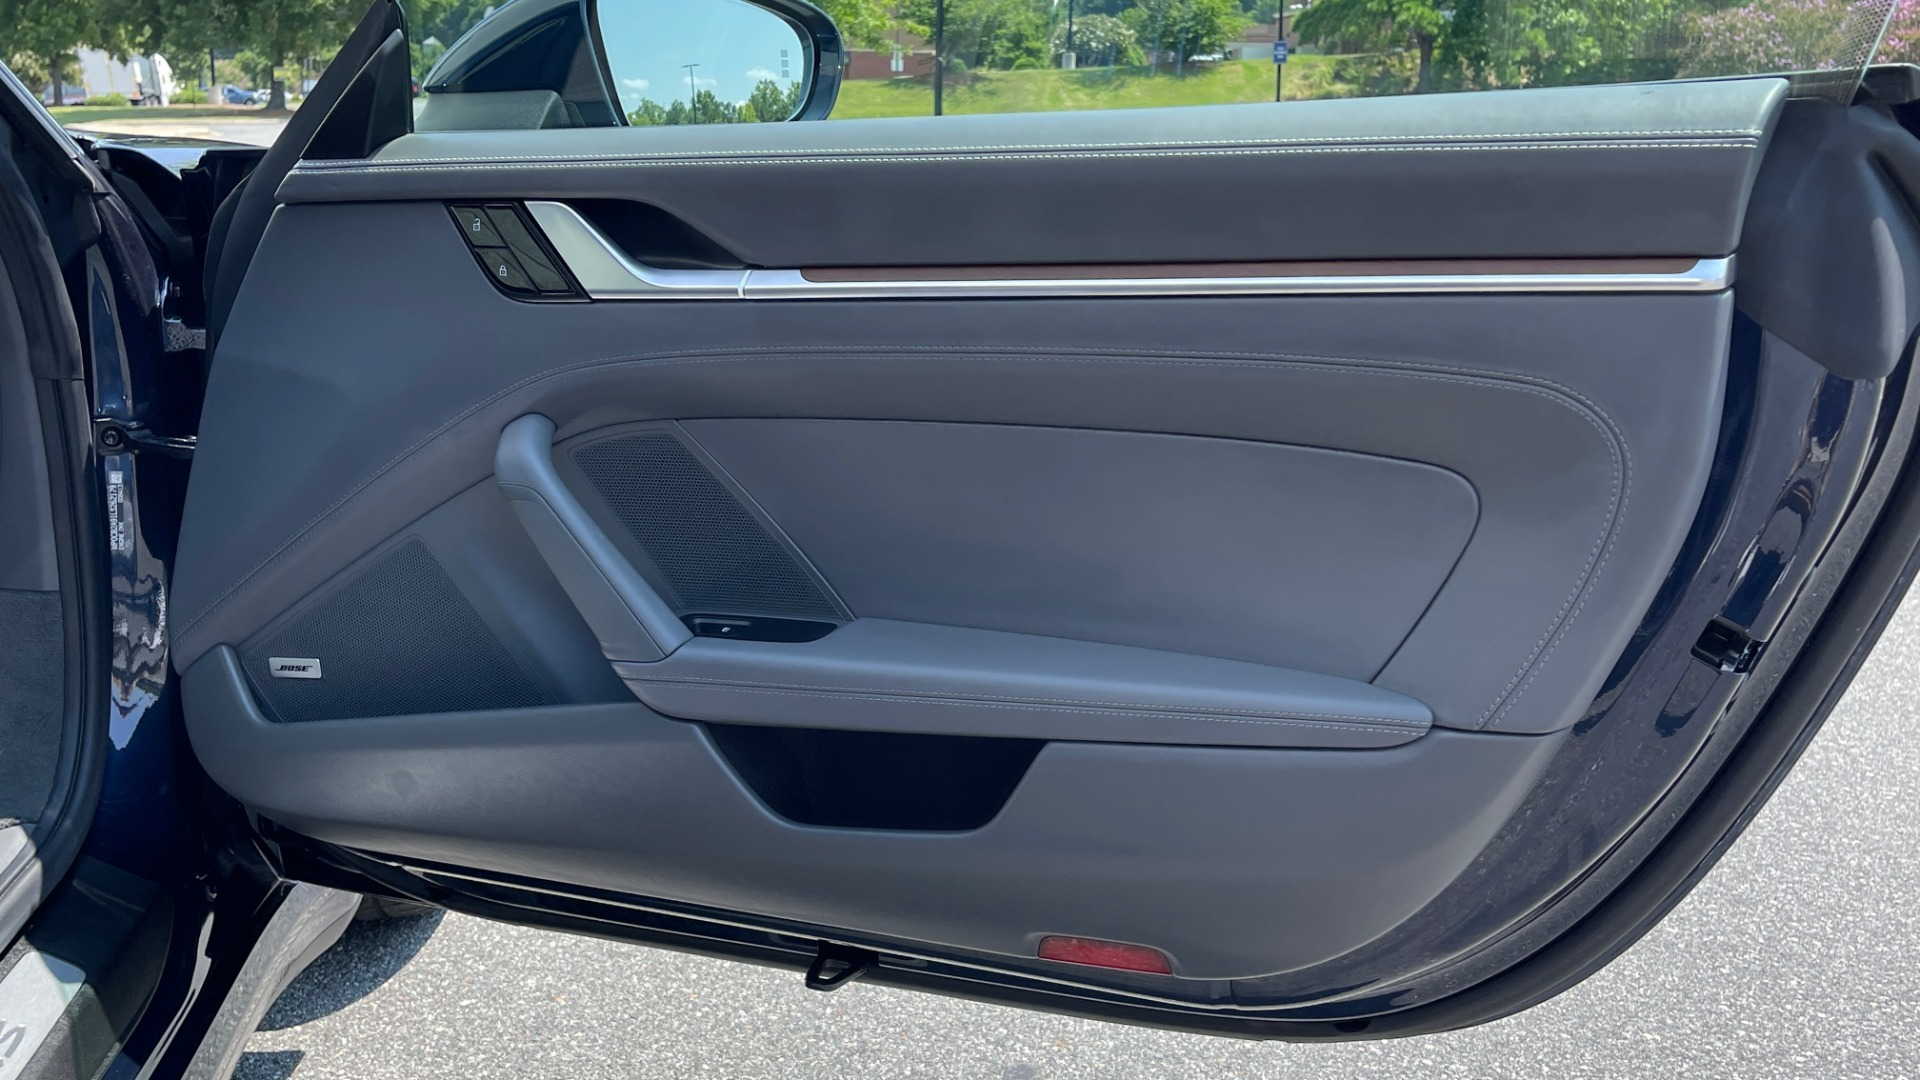 Used 2020 Porsche 911 CARRERA S CABRIOLET PREMIUM SPORT / LCA / ACC / BOSE / REARVIEW for sale $159,995 at Formula Imports in Charlotte NC 28227 69